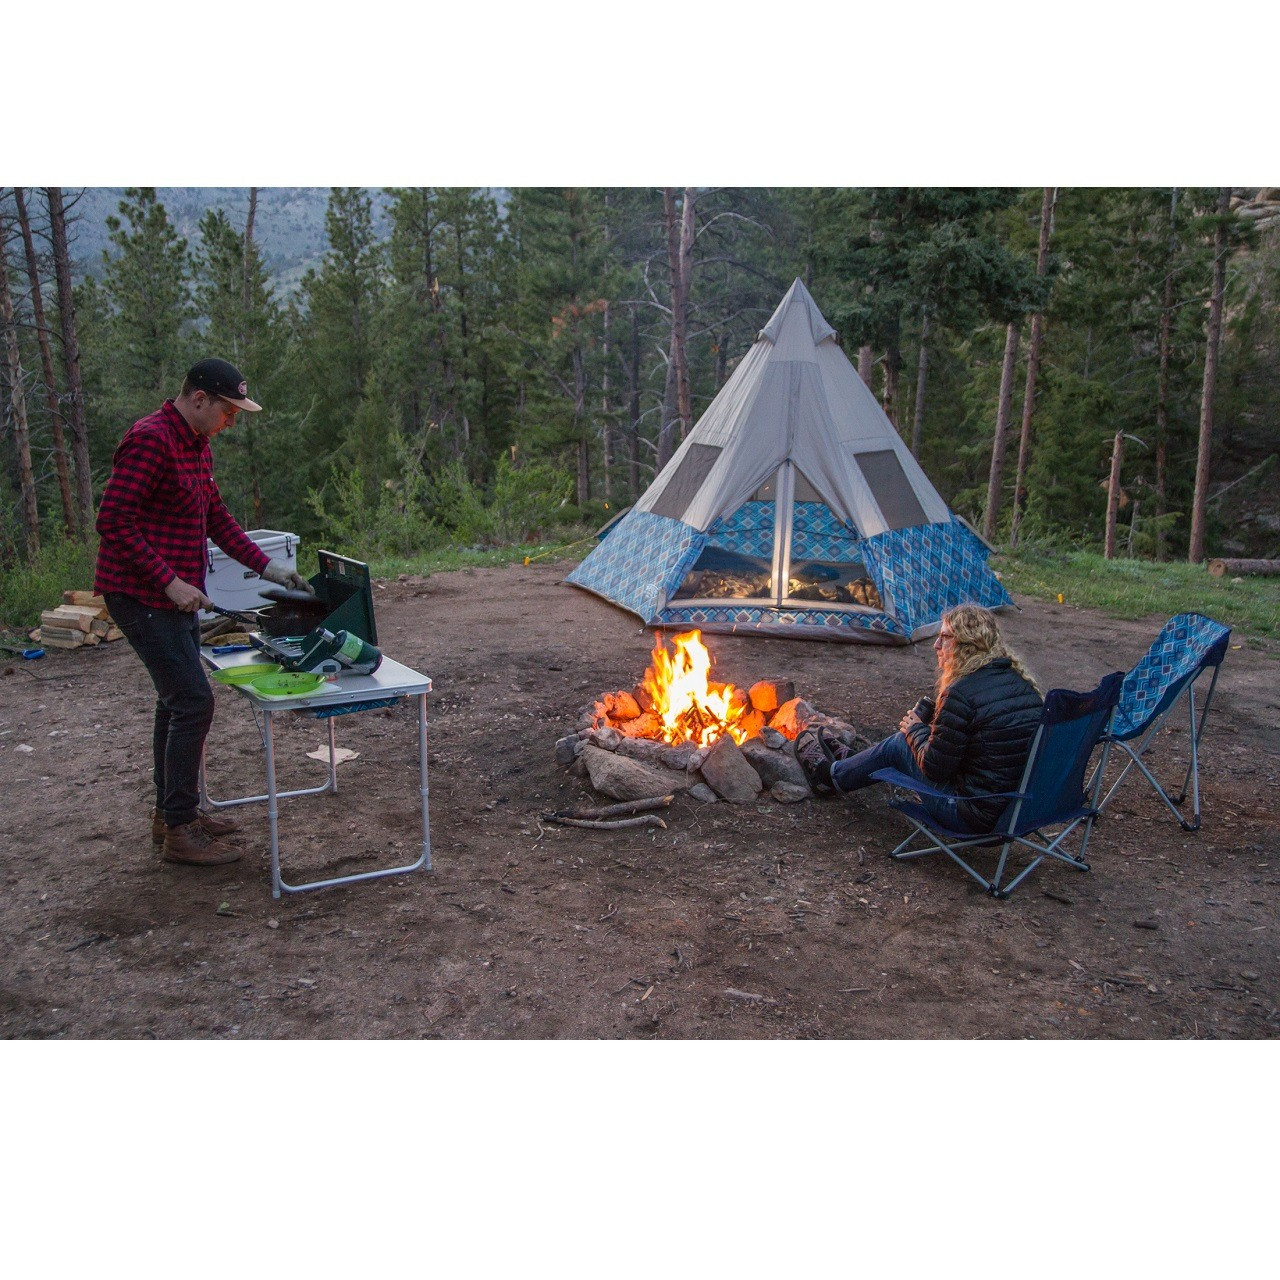 Man sitting outside of a Wenzel tent cooking on a stove with a woman sitting in a Wenzel Low Rise Quad Chair near a fire